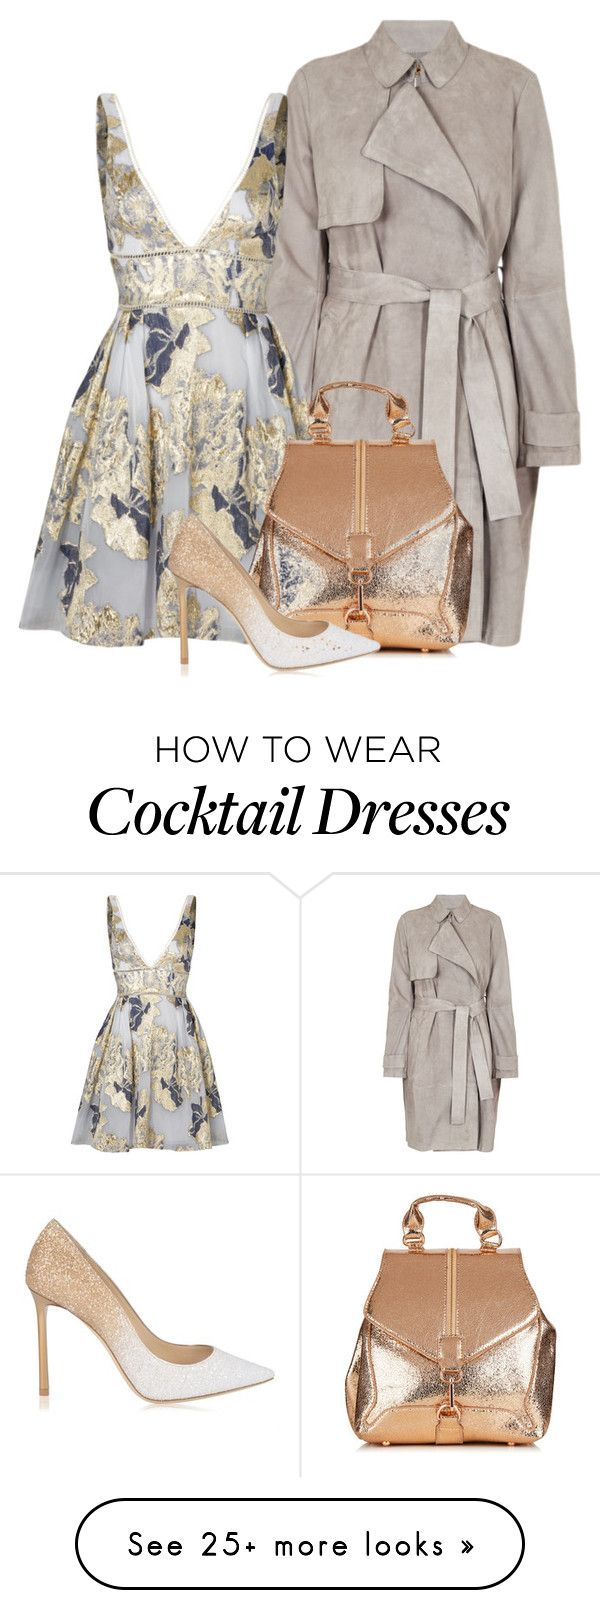 """Metallic Floral"" by cherieaustin on Polyvore featuring HUGO, Notte by Marchesa and Jimmy Choo"